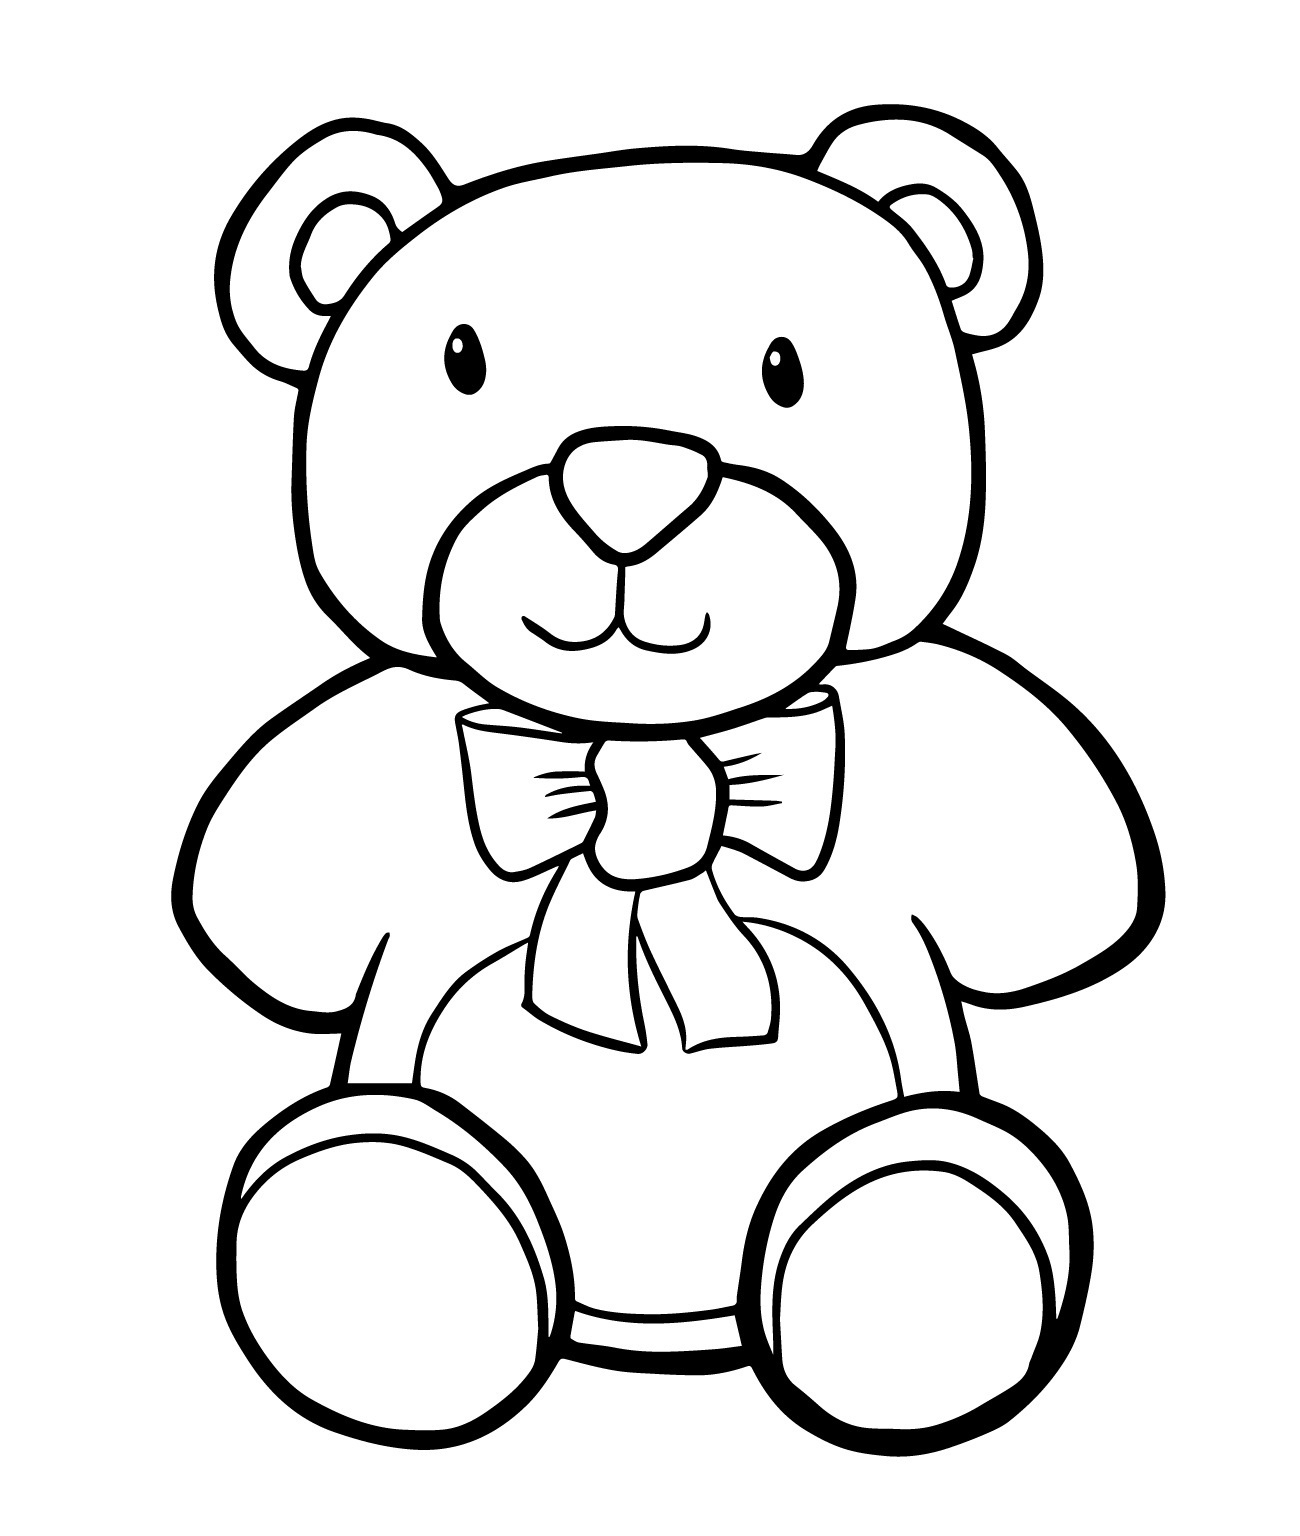 Teddy clipart coloring #2